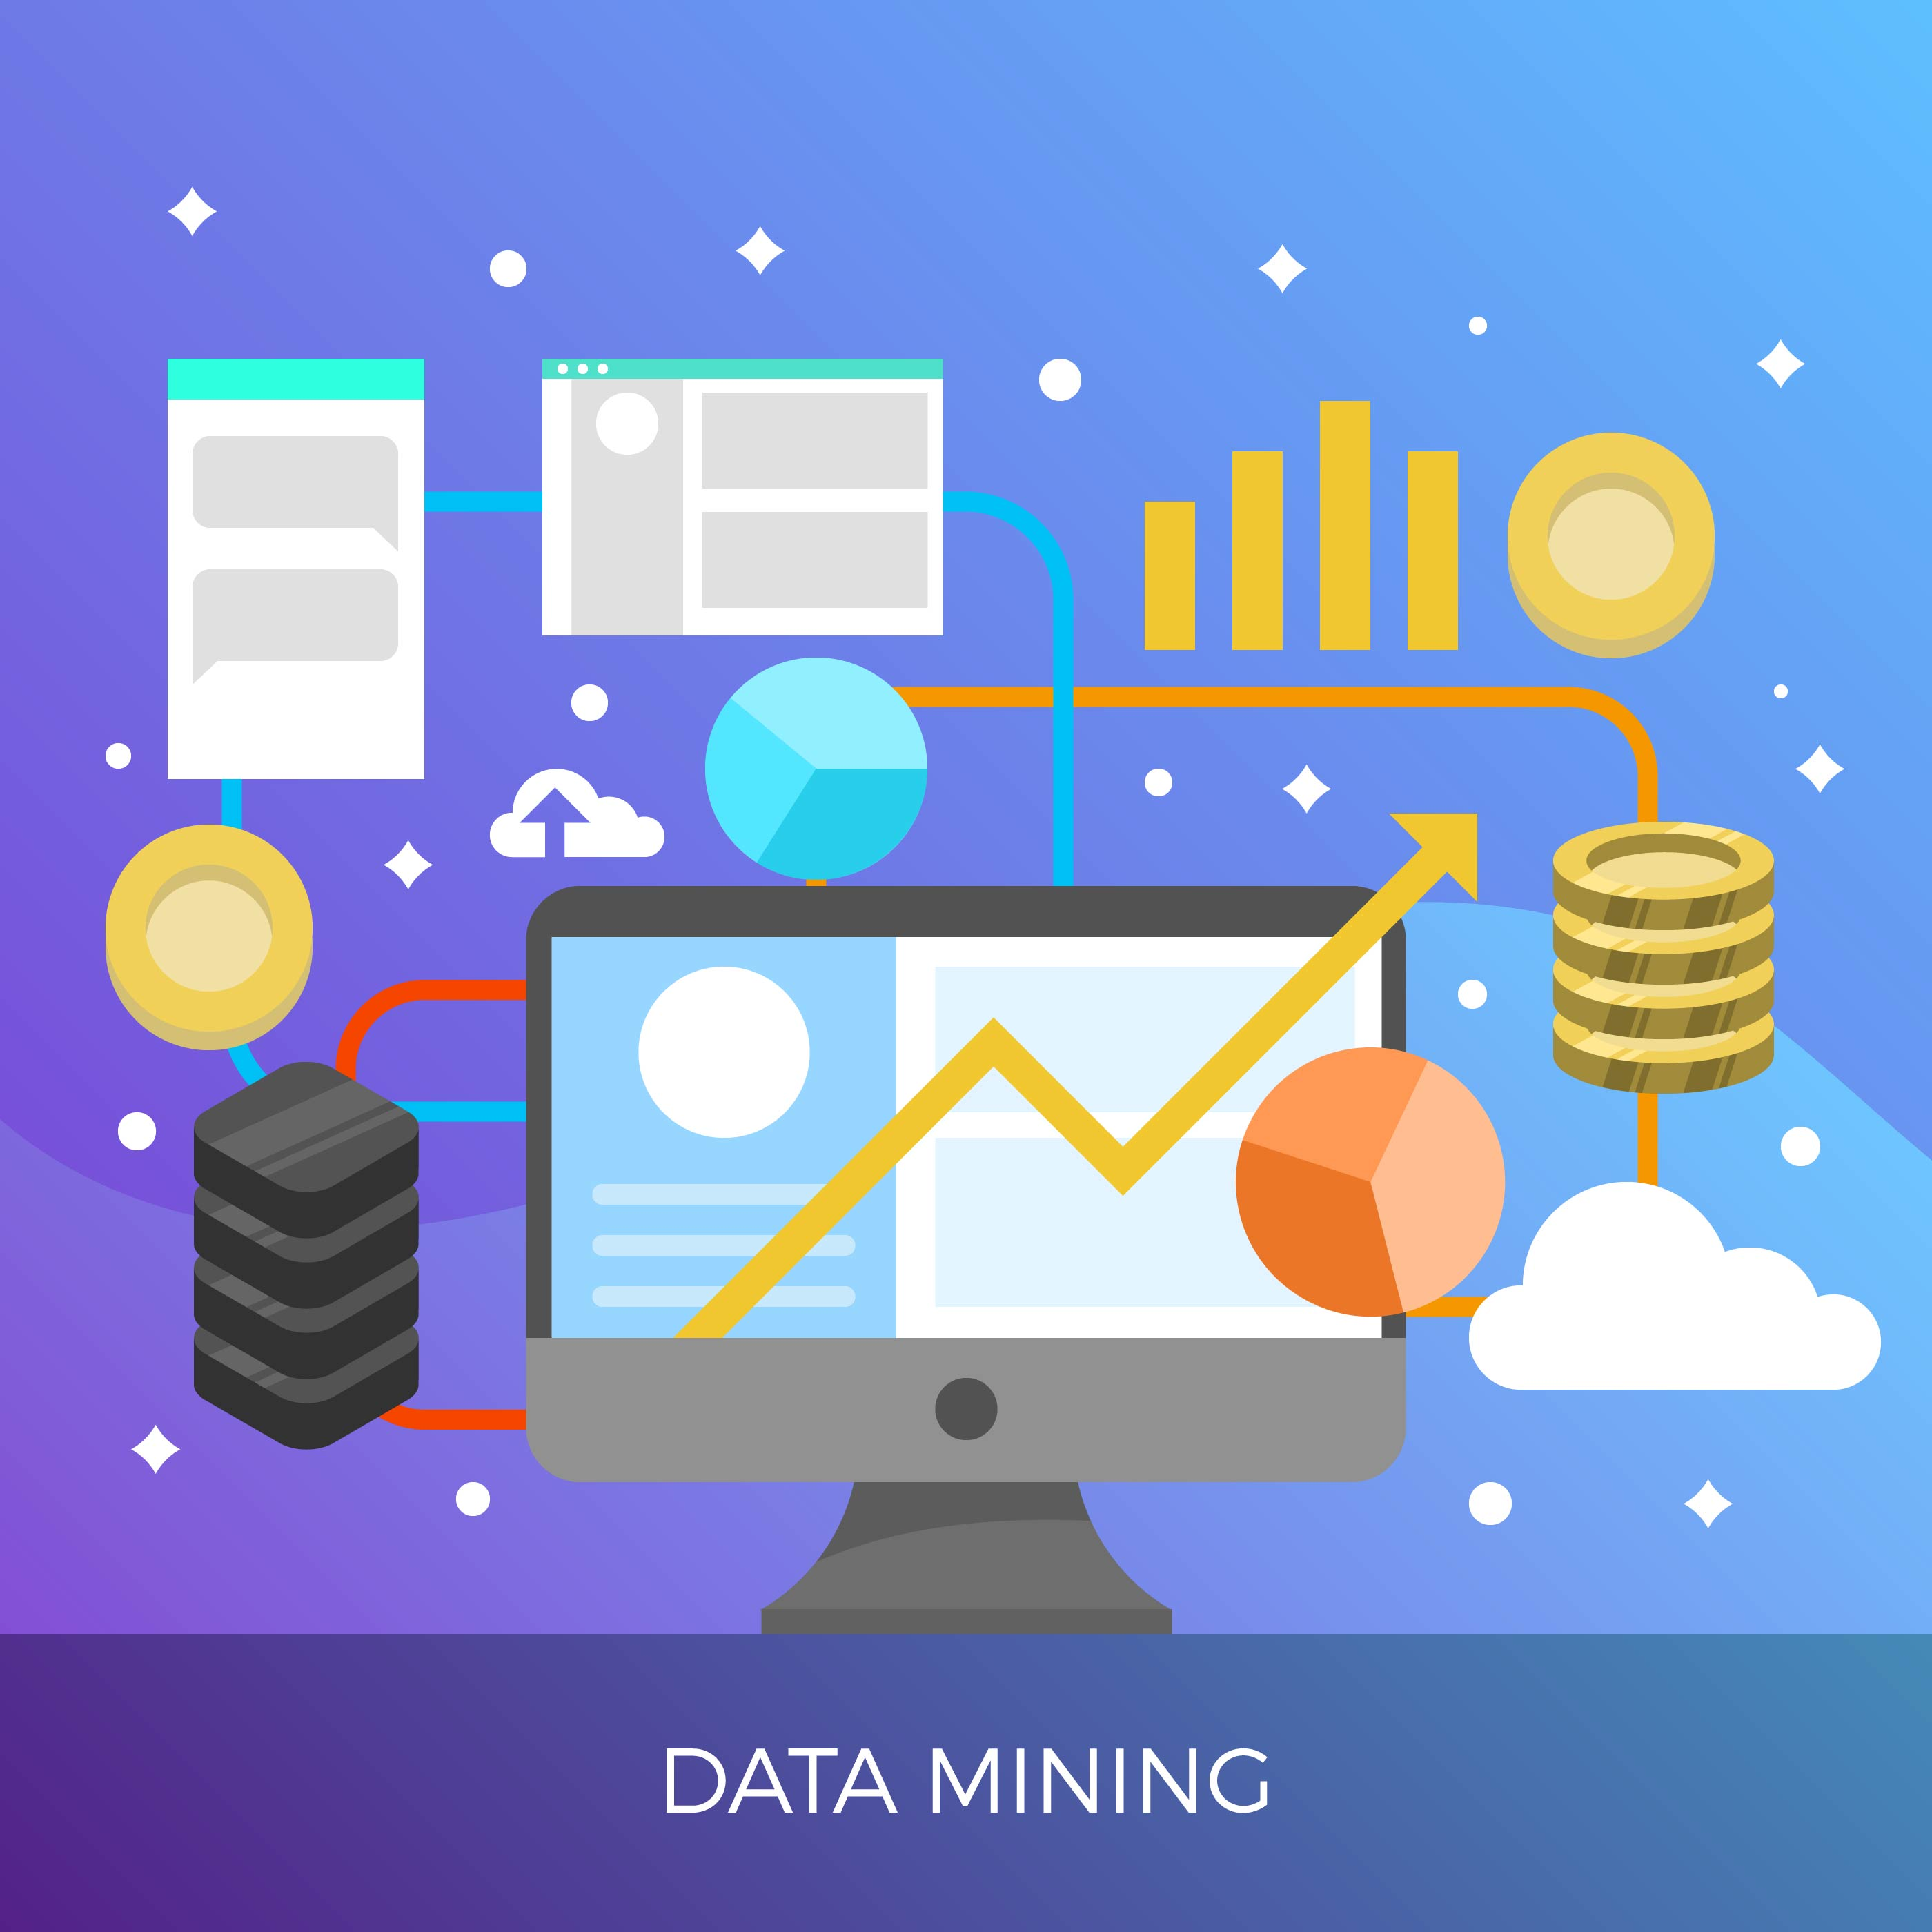 is cryptocurrency considered data mining